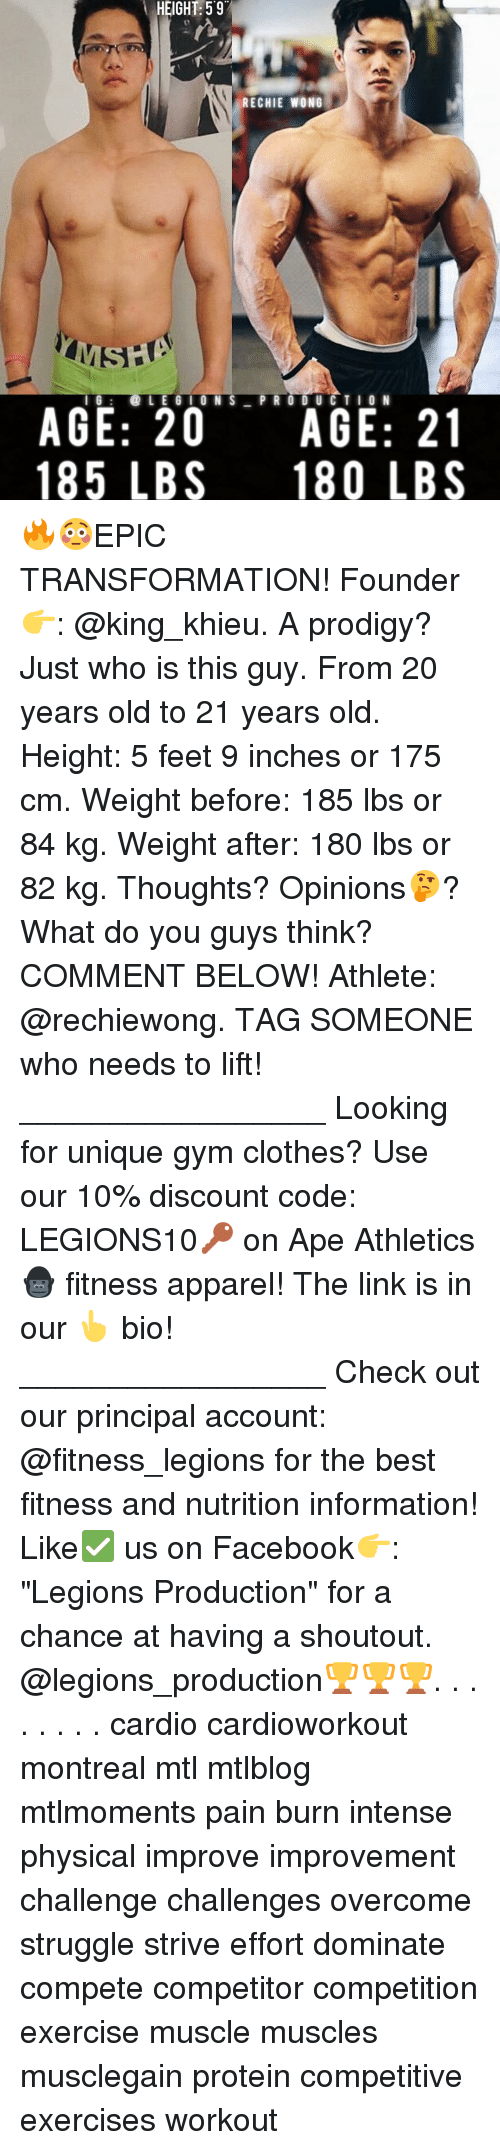 """Memes, Protein, and 🤖: HEIGHT: 597  RECHIE WONG  LEGION S  PRODUCTION  I G  AGE: 20 AGE: 21  185 LBS 180 LBS 🔥😳EPIC TRANSFORMATION! Founder 👉: @king_khieu. A prodigy? Just who is this guy. From 20 years old to 21 years old. Height: 5 feet 9 inches or 175 cm. Weight before: 185 lbs or 84 kg. Weight after: 180 lbs or 82 kg. Thoughts? Opinions🤔? What do you guys think? COMMENT BELOW! Athlete: @rechiewong. TAG SOMEONE who needs to lift! _________________ Looking for unique gym clothes? Use our 10% discount code: LEGIONS10🔑 on Ape Athletics 🦍 fitness apparel! The link is in our 👆 bio! _________________ Check out our principal account: @fitness_legions for the best fitness and nutrition information! Like✅ us on Facebook👉: """"Legions Production"""" for a chance at having a shoutout. @legions_production🏆🏆🏆. . . . . . . . cardio cardioworkout montreal mtl mtlblog mtlmoments pain burn intense physical improve improvement challenge challenges overcome struggle strive effort dominate compete competitor competition exercise muscle muscles musclegain protein competitive exercises workout"""